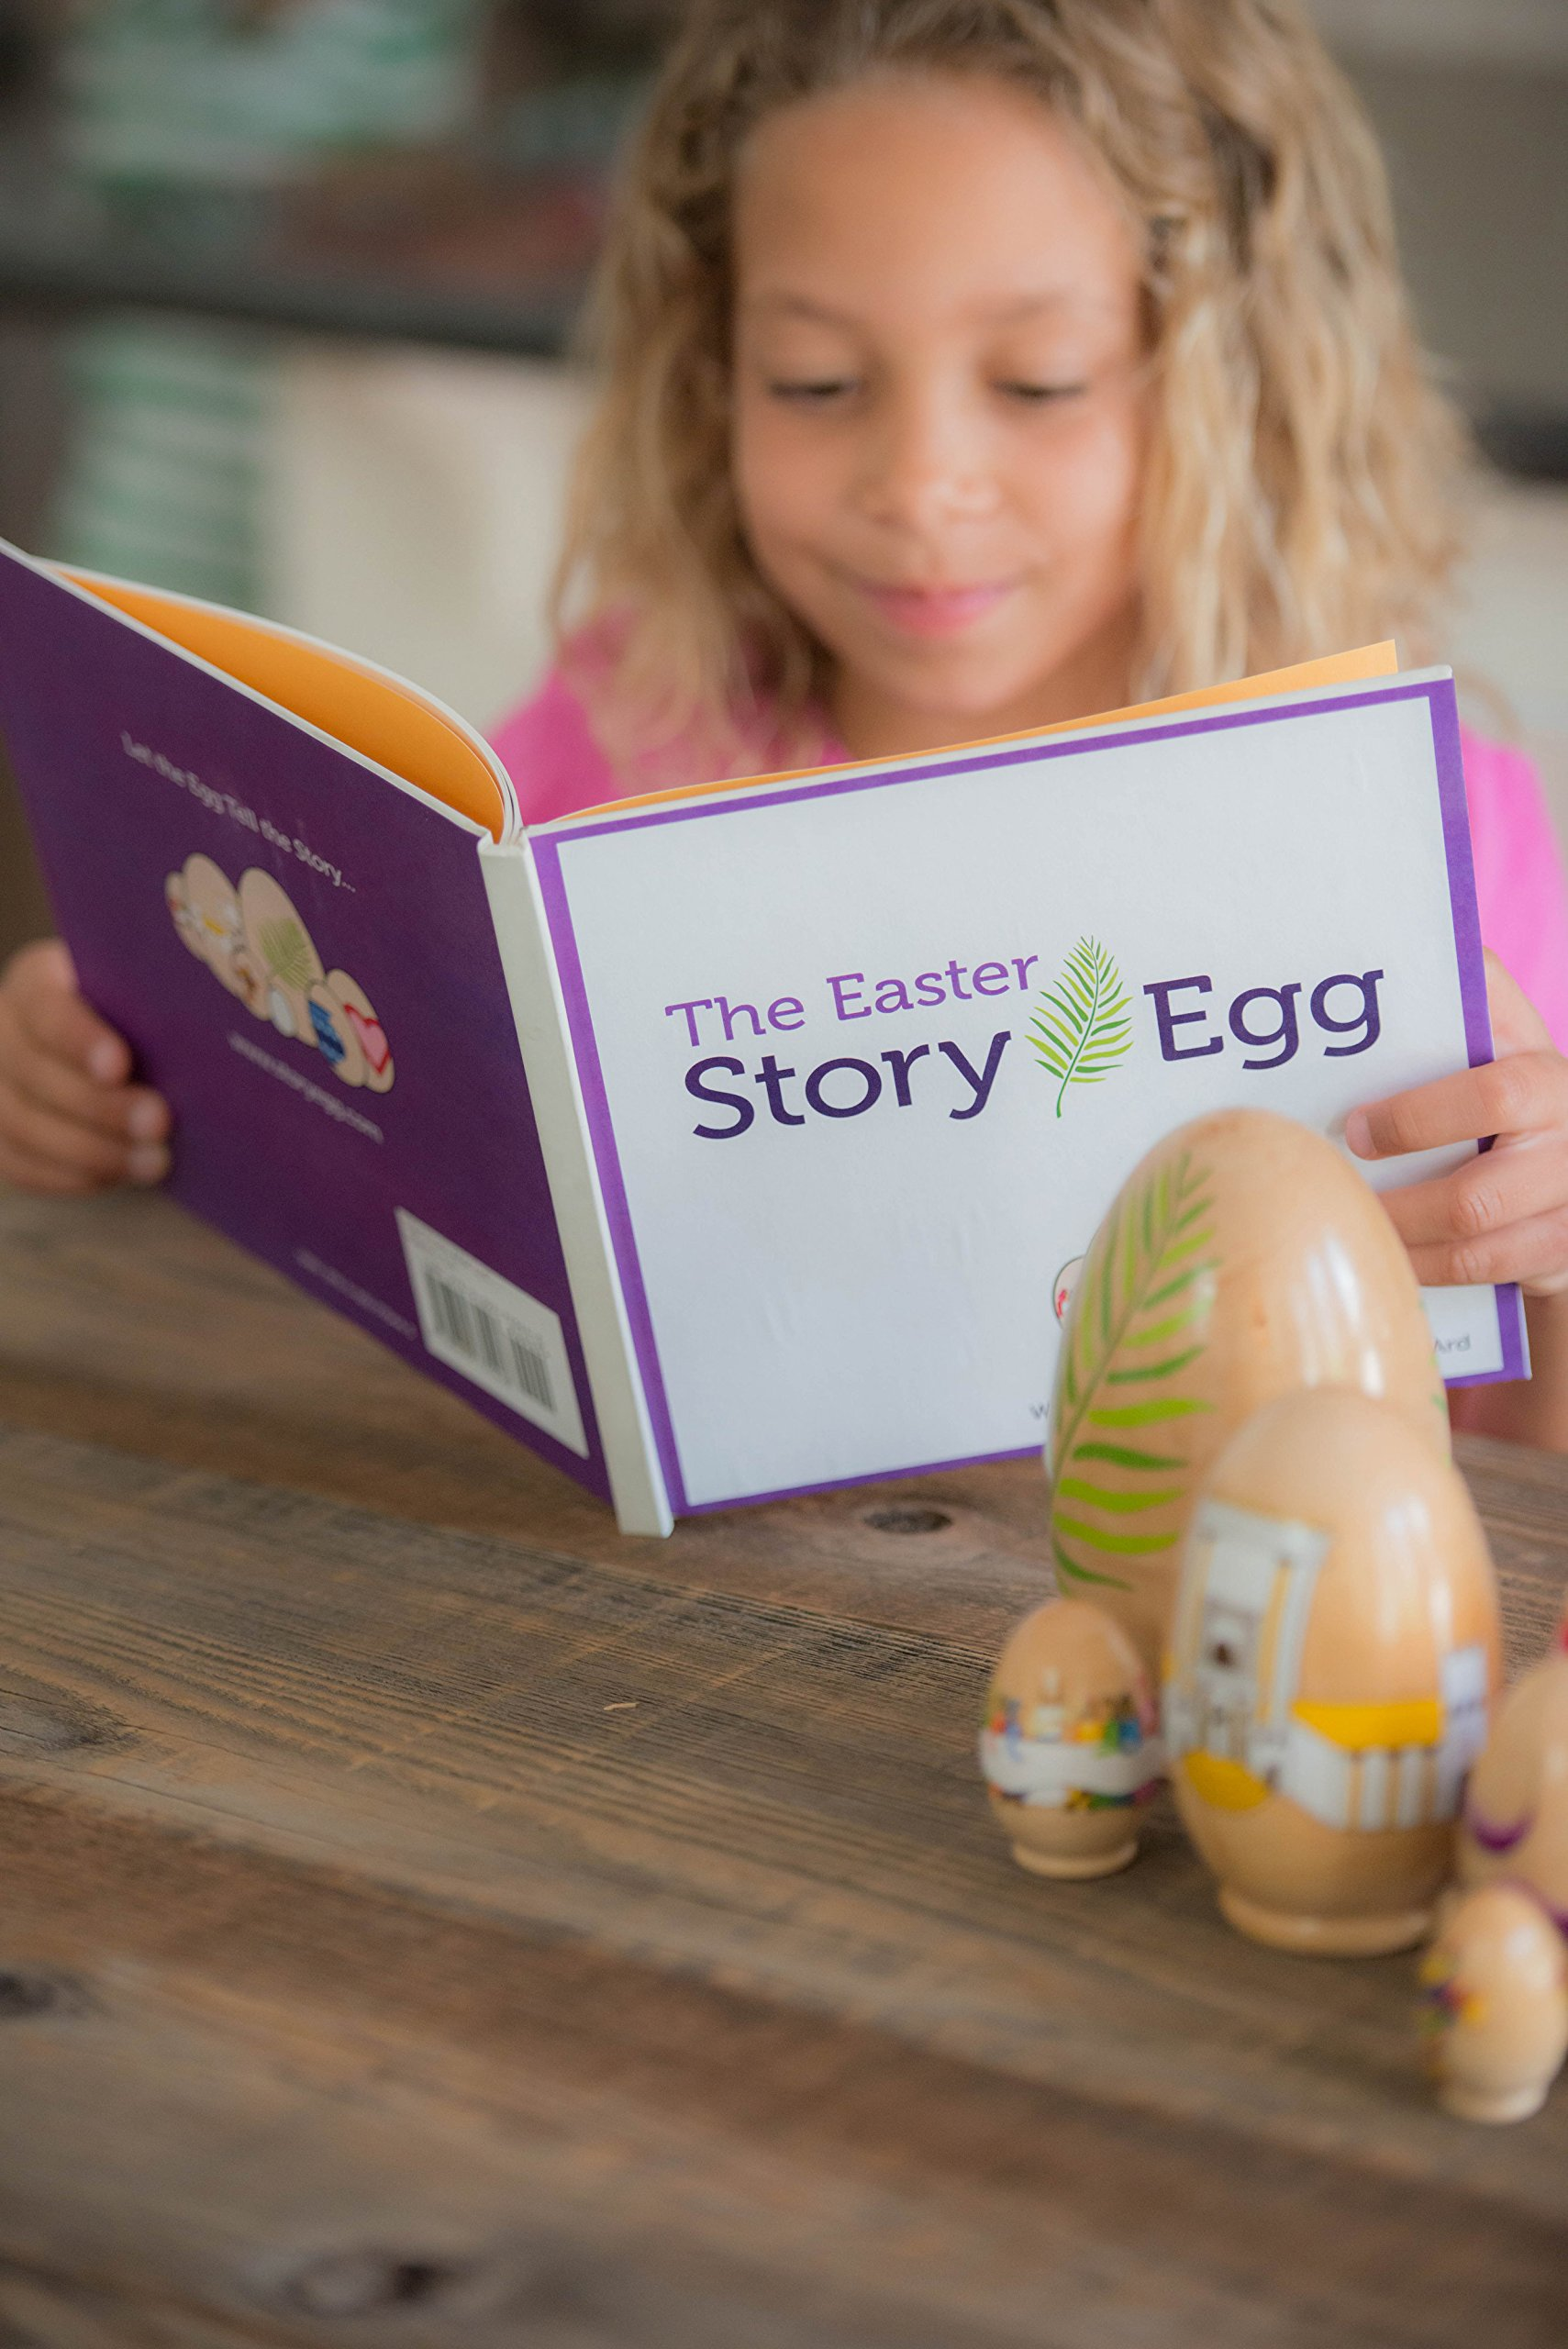 STORY EGG The Easter Colorful Nesting Toy with Resurrection Book – Great Christian or Catholic Gift for Children by STORY EGG (Image #3)